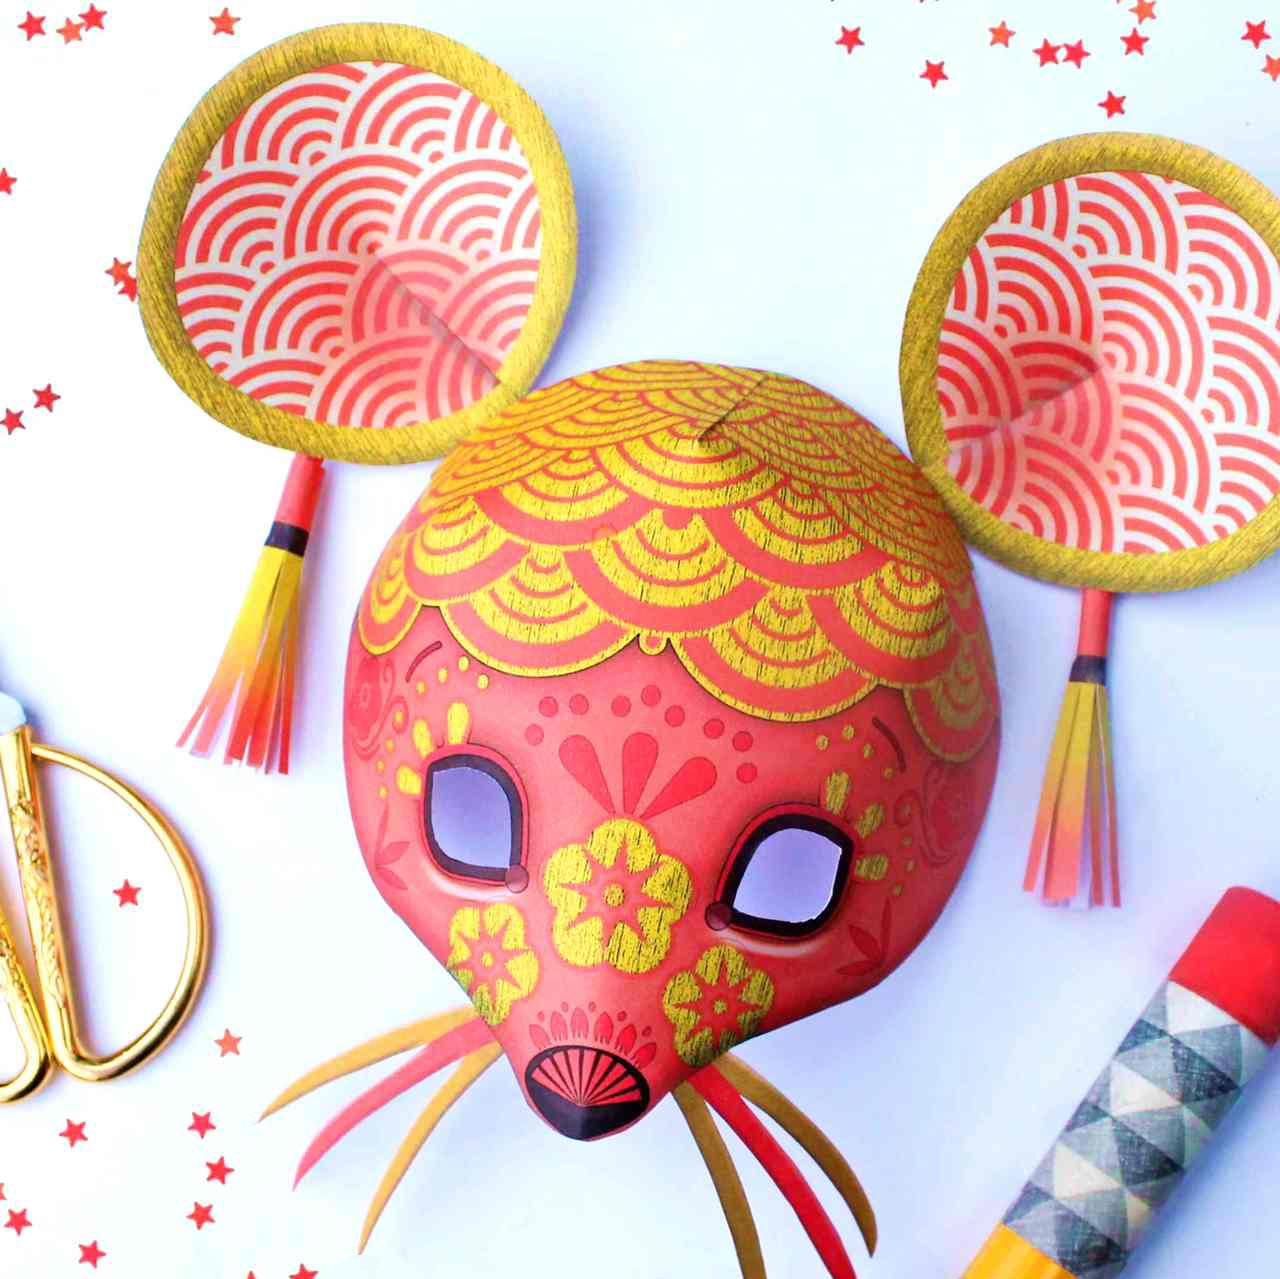 Year Of The Rat Mask Printout Paper Masks To Celebrate Chinese New Year